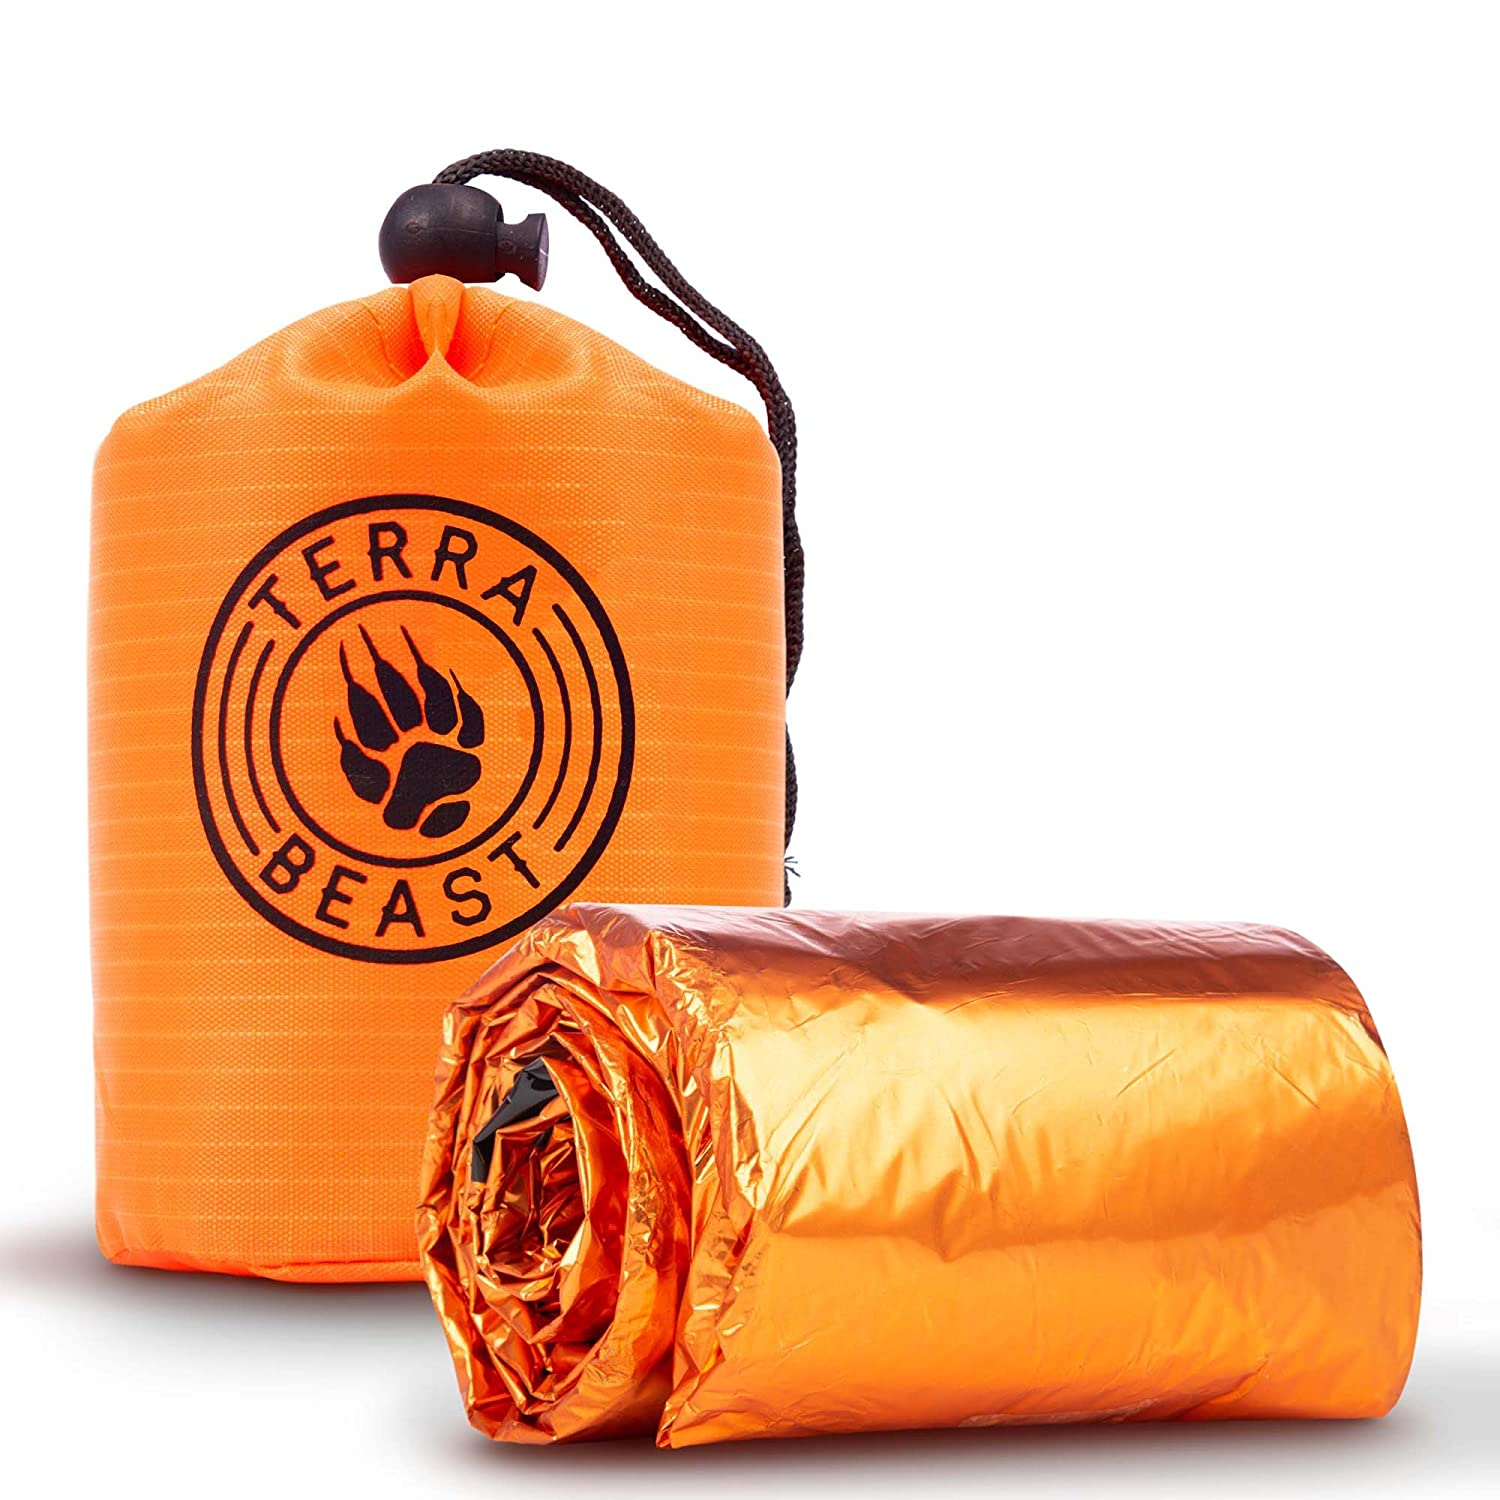 the best attitude c0447 67390 Emergency Sleeping Bag - for Shelter and Protection That Fits in Your Hand  - All Weather Survival Bivy for Camping, Hiking and Outdoors - Easy to Use  ...